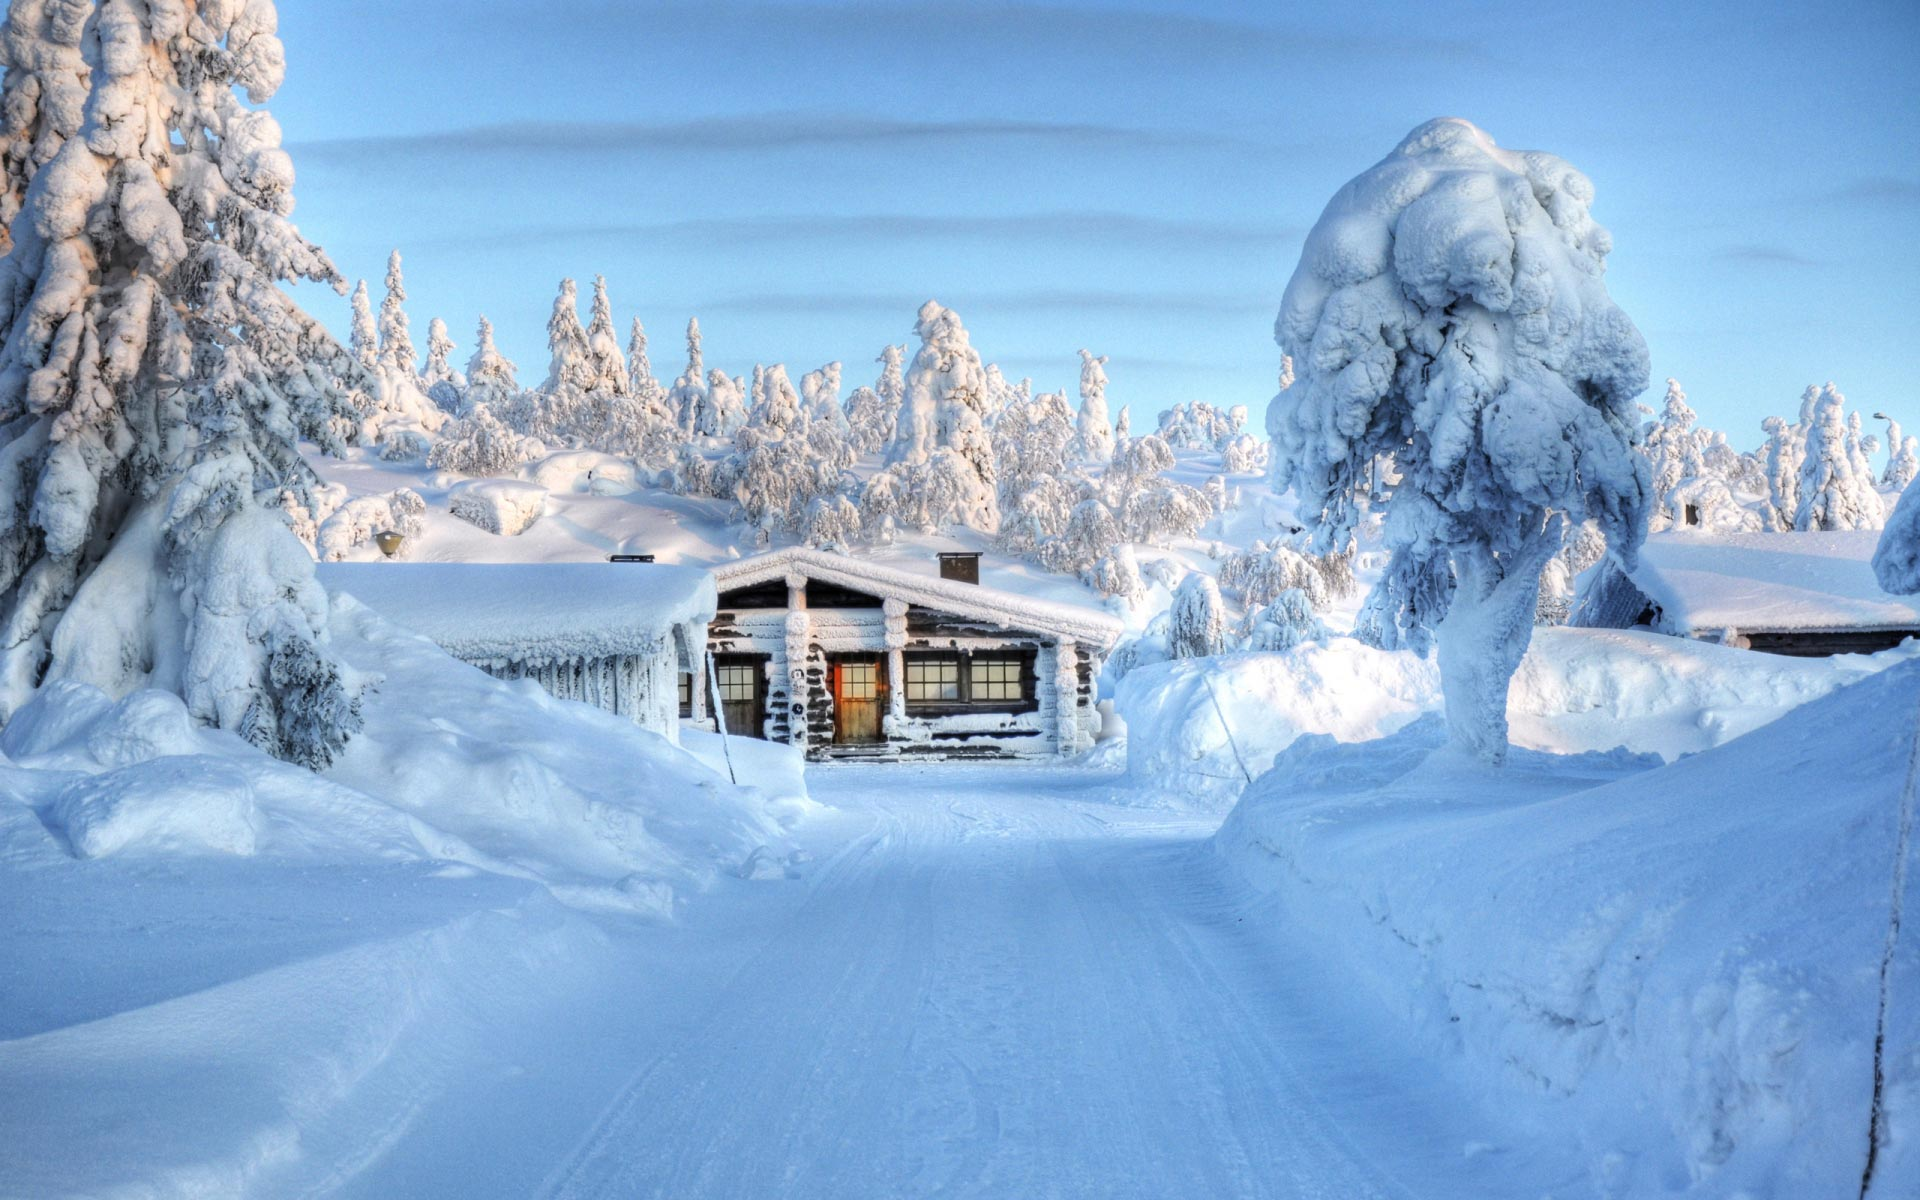 HU-Snow-Snow-HD-Pics-Free-Large-Images-wallpaper-wpc9006305